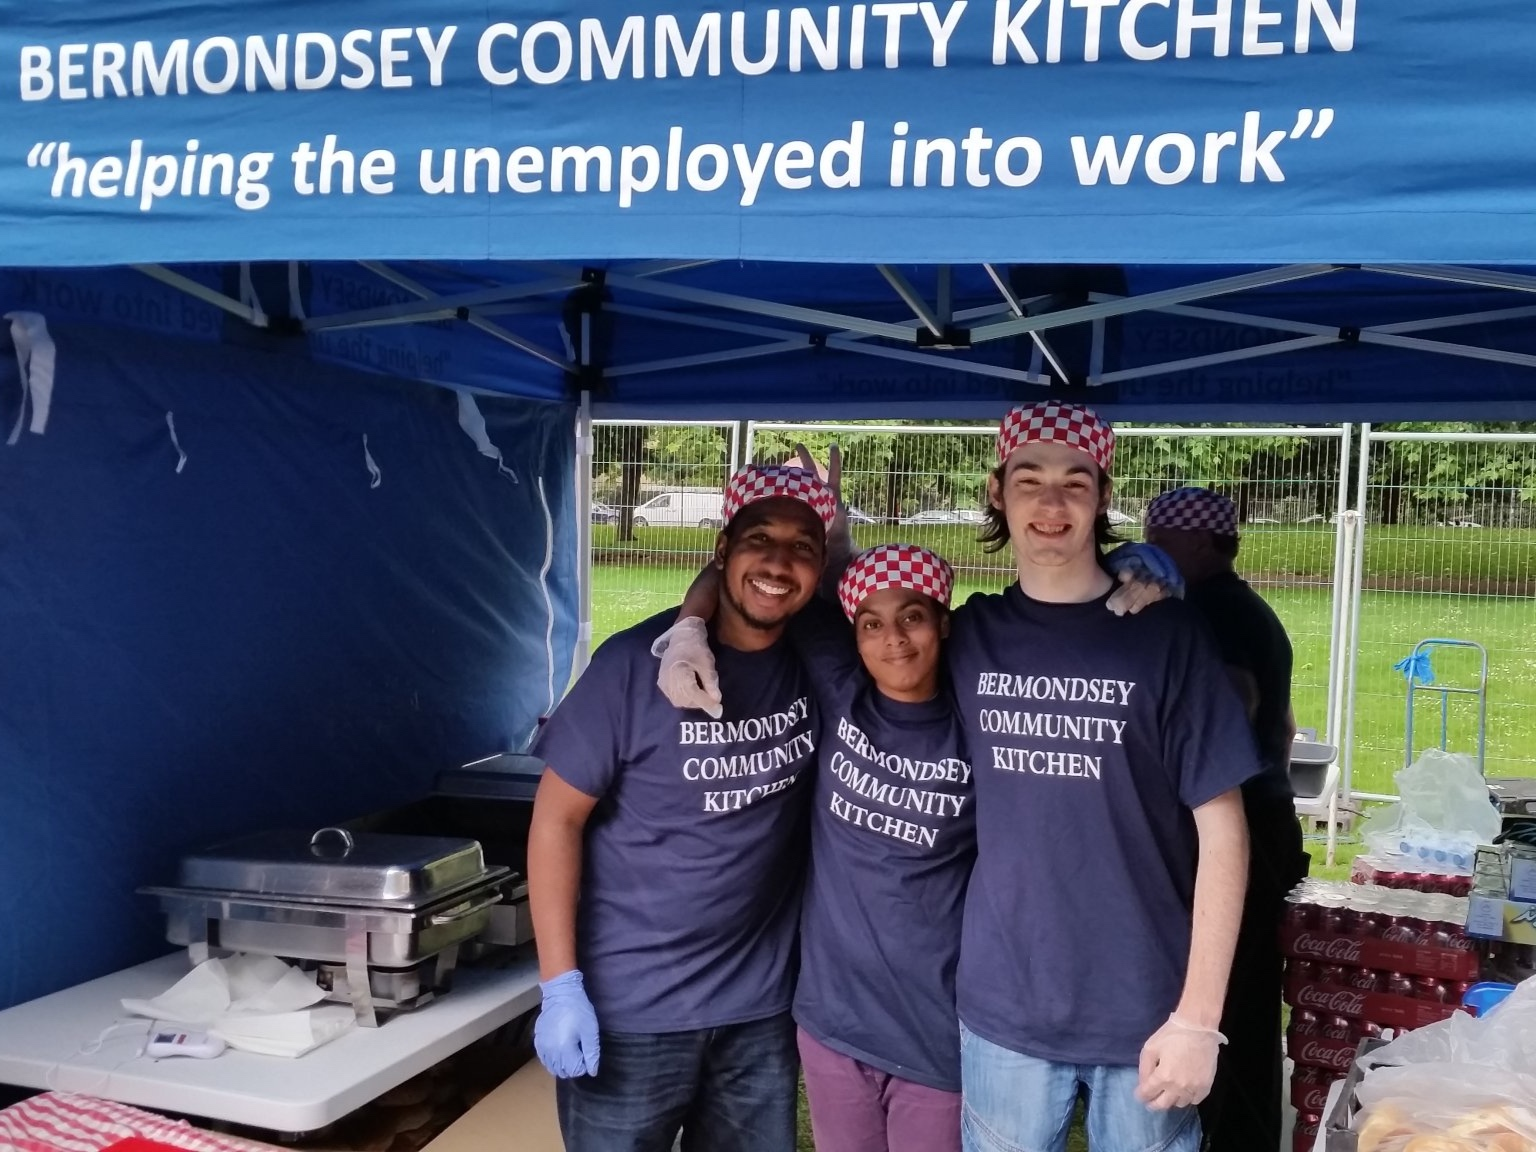 Bermondsey Community Kitchen - Bermondsey Community Kitchen organisation is a community cafe and free training facility providing a City and Guilds Level 1 Food Preparation and Cookery Qualification and Level 2 City and Guilds Professional Cookery qualification.Learn more+